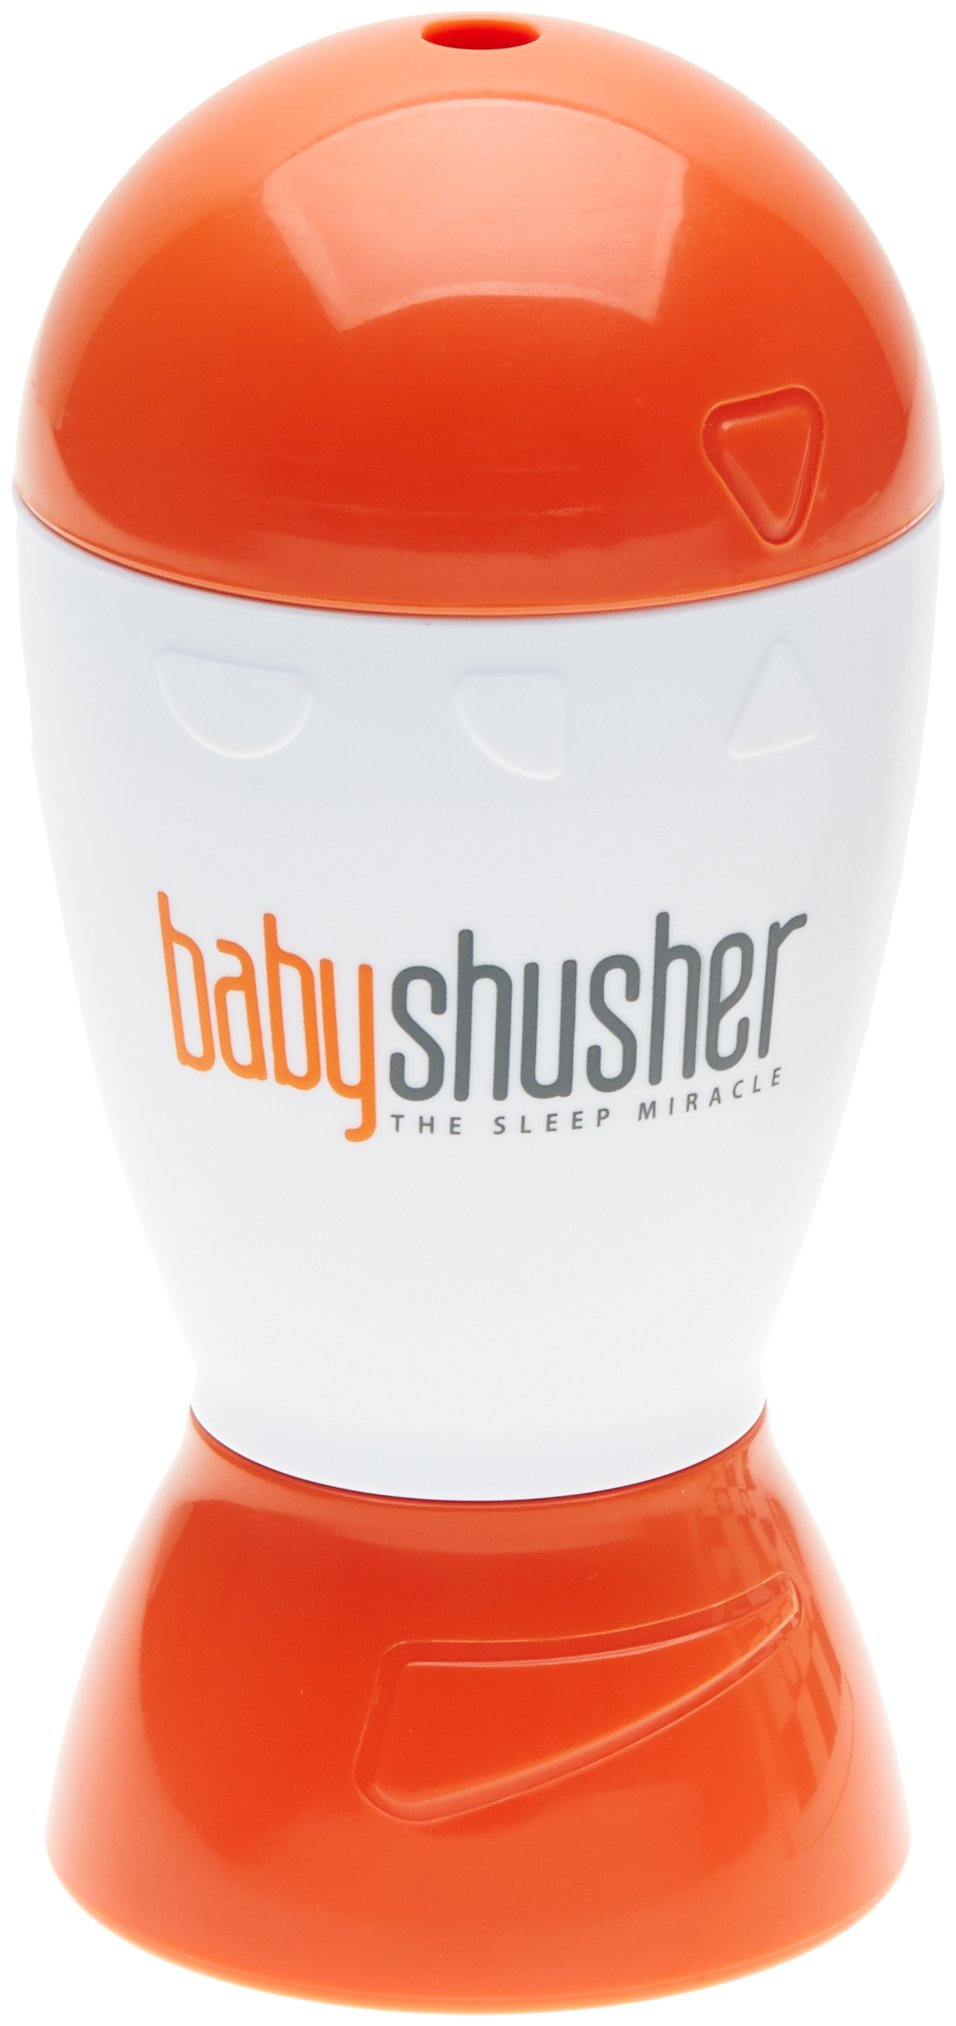 Baby Shusher Sleep Miracle Soother